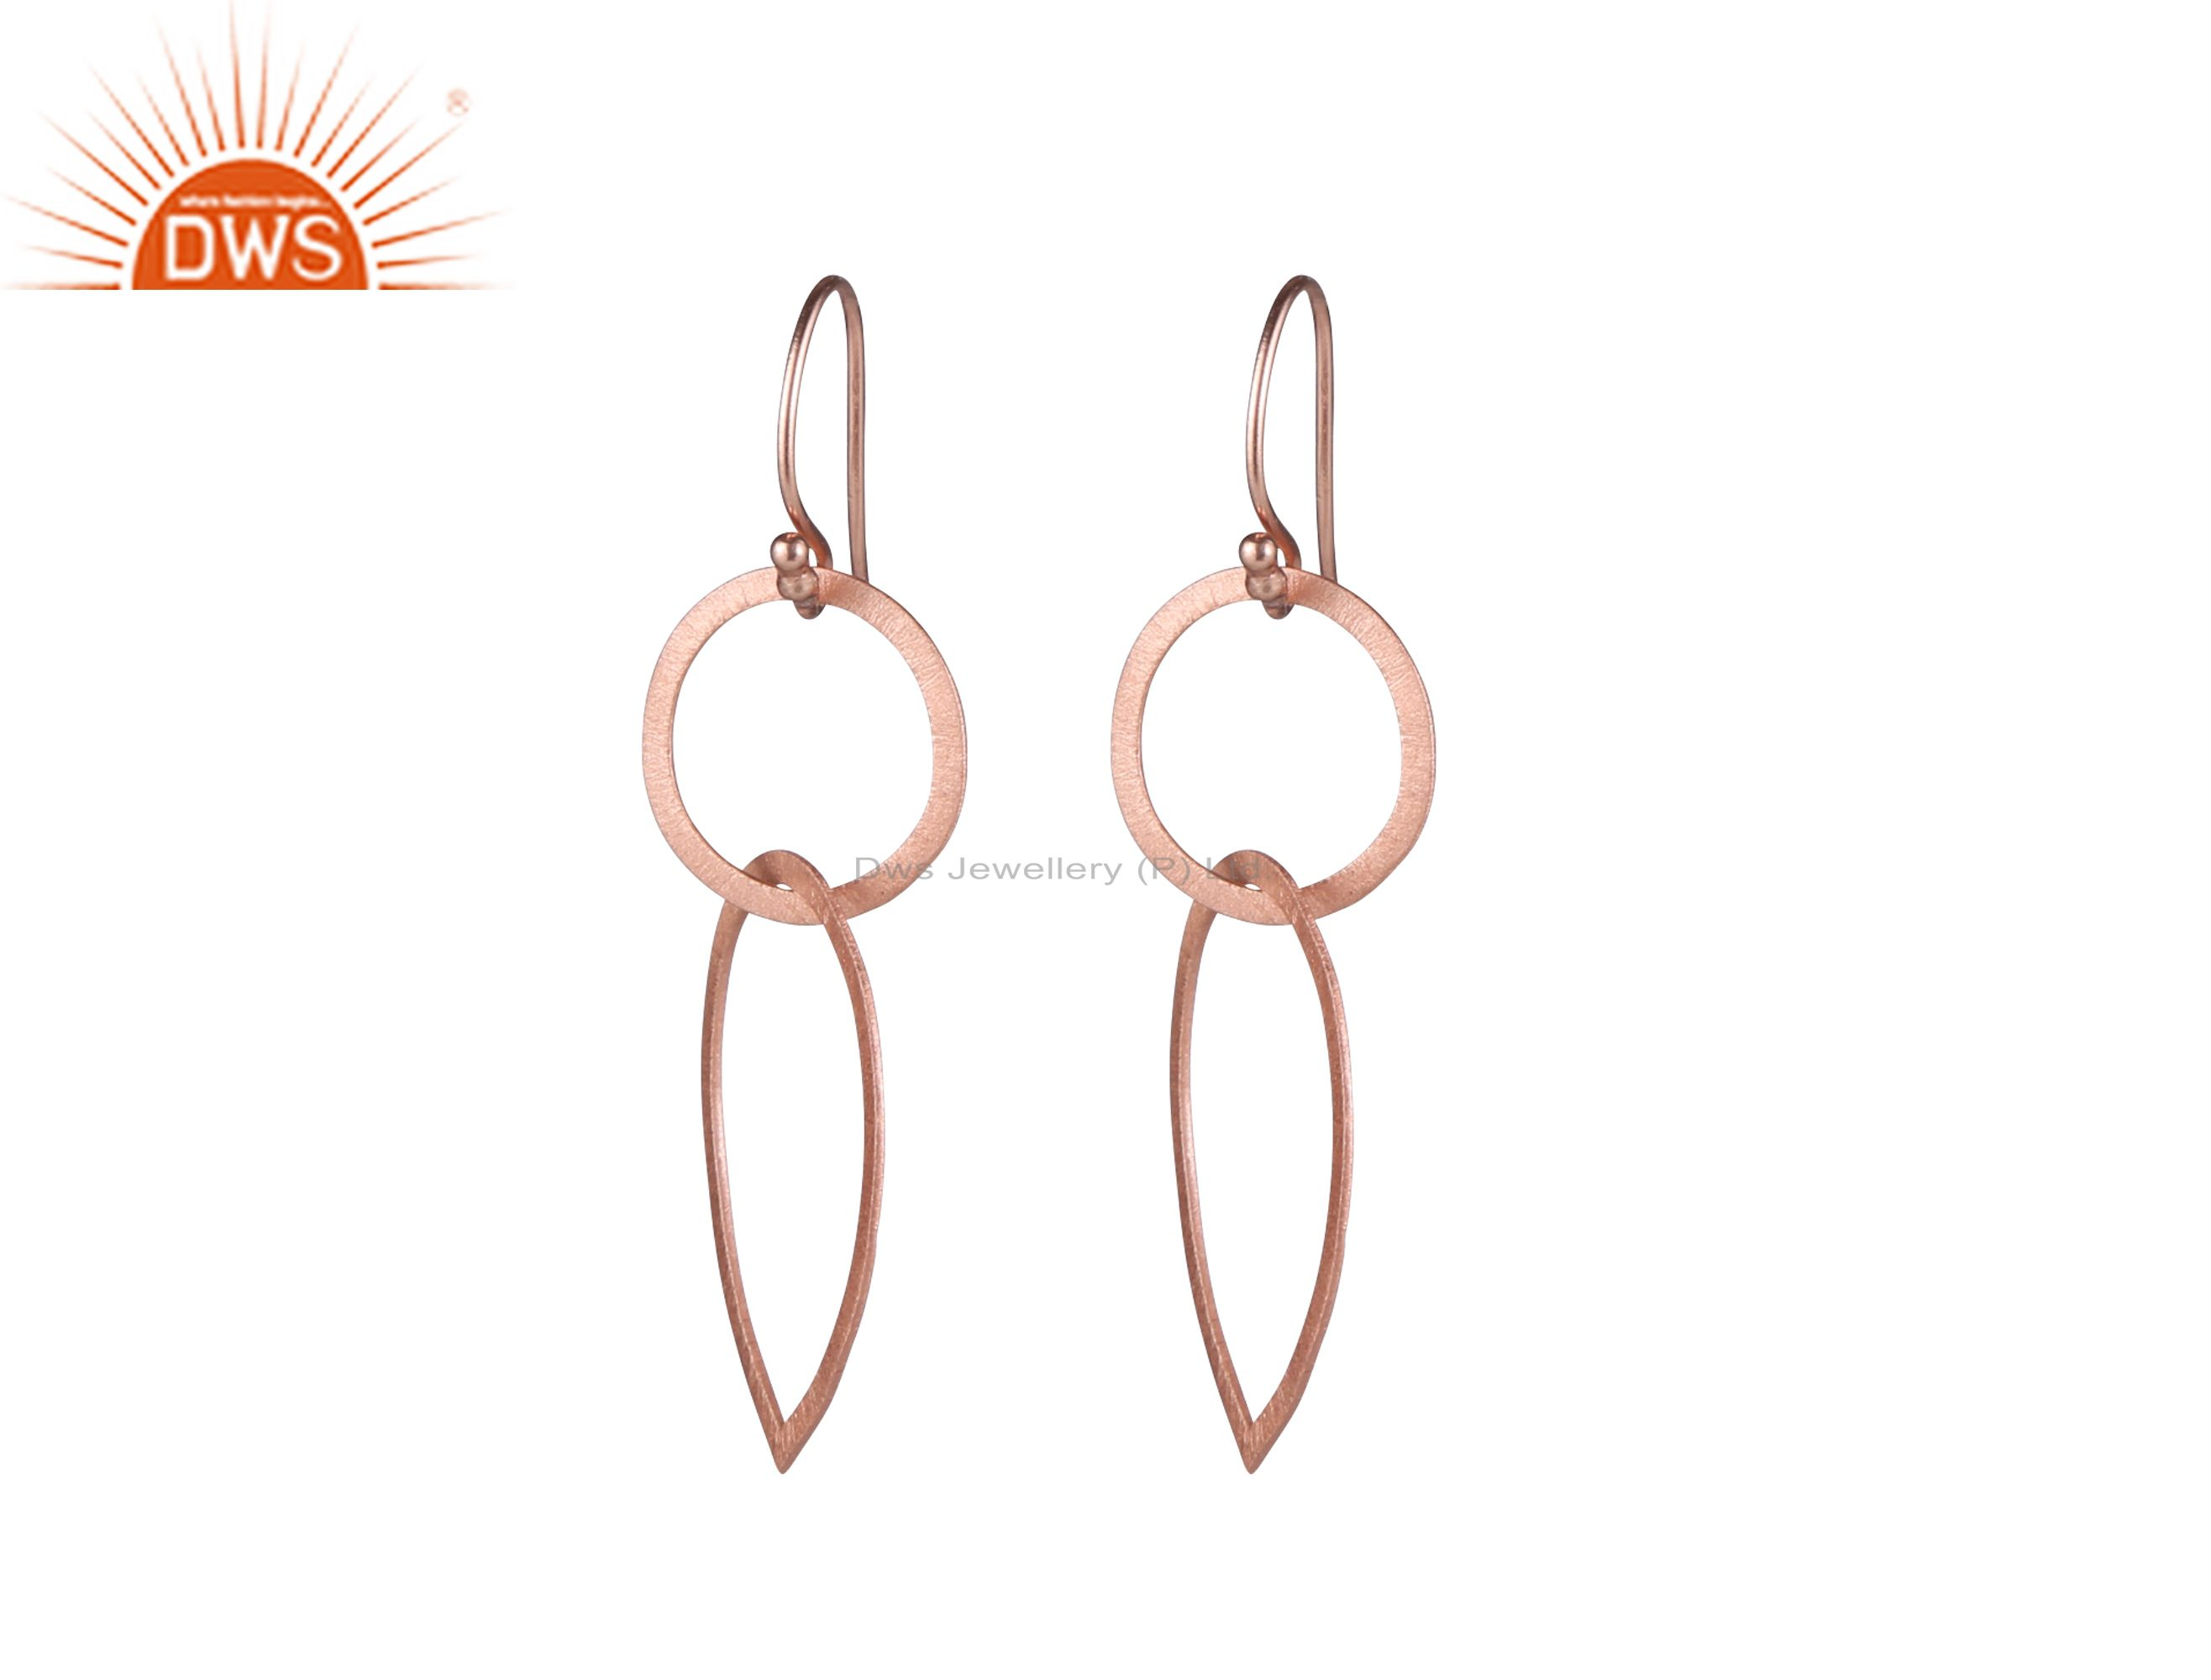 18K Rose Gold Plated Sterling Silver Brushed Finish Open Circle Drop Earrings